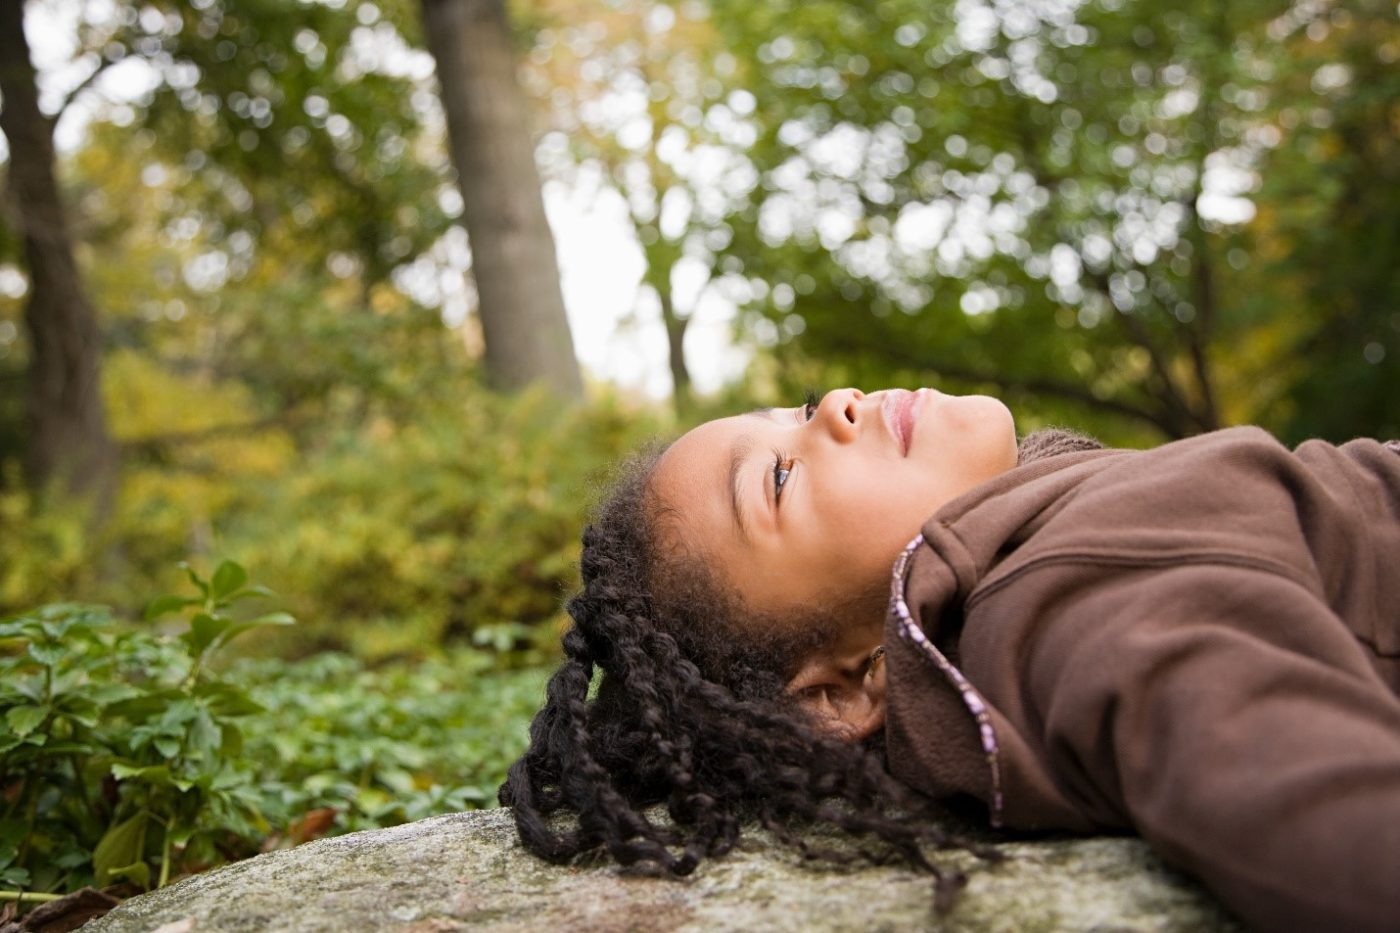 Black-child-lying-on-log-enjoys-nature-1400x933, Coronavirus parenting: Protecting your children during the pandemic, Culture Currents